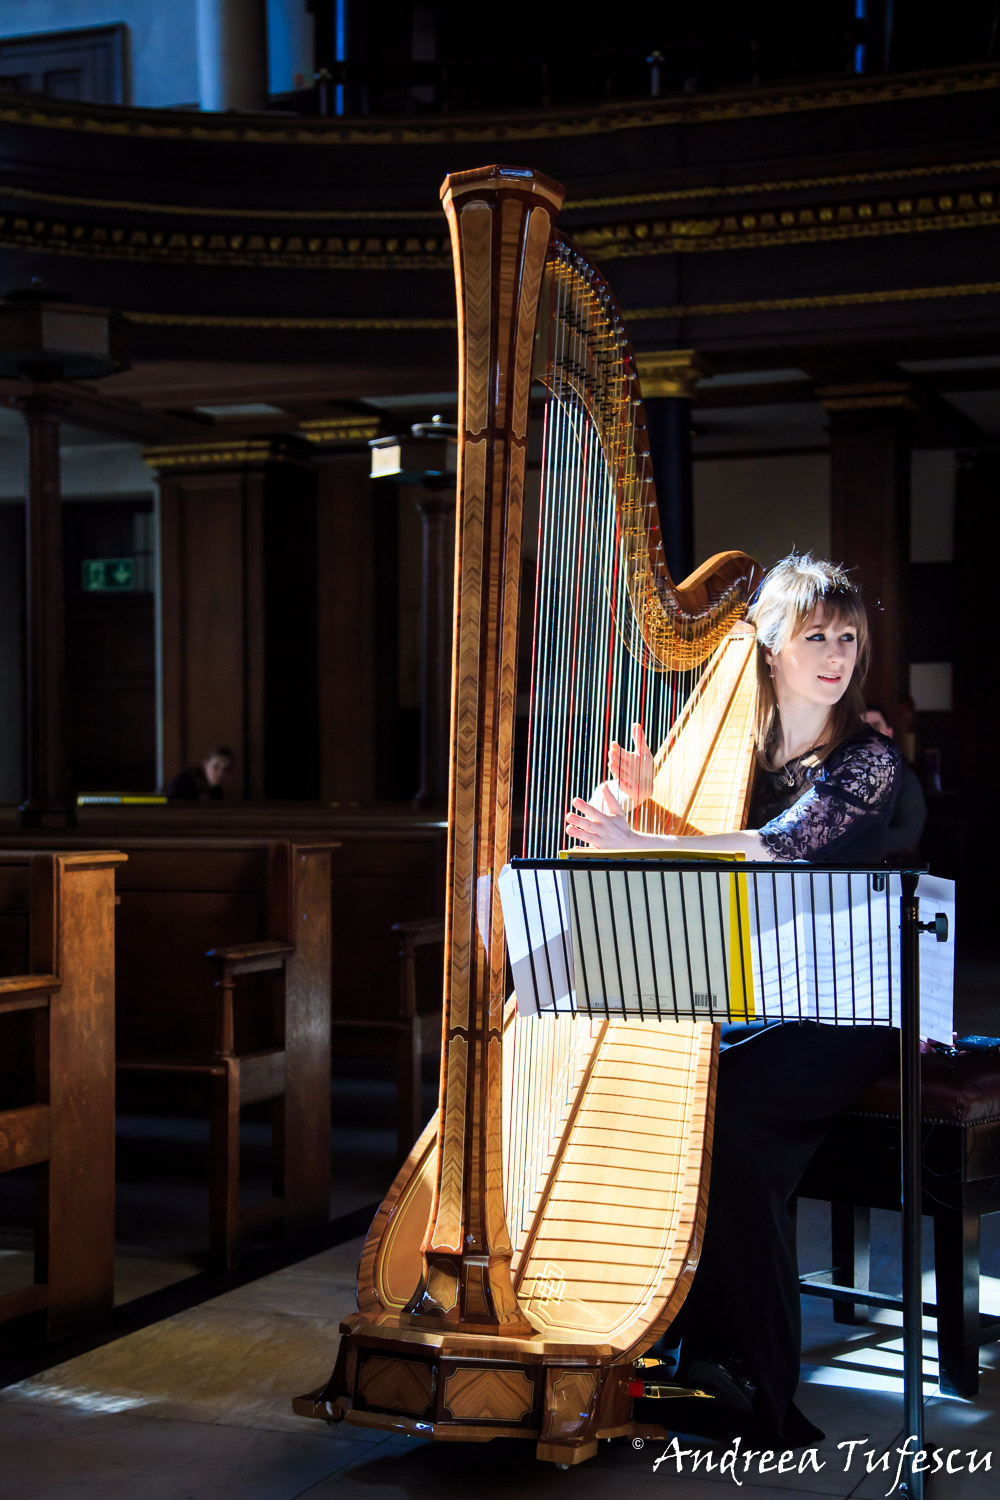 St Cecilia Ensemble at St James's Piccadilly by London photographer Andreea Tufescu